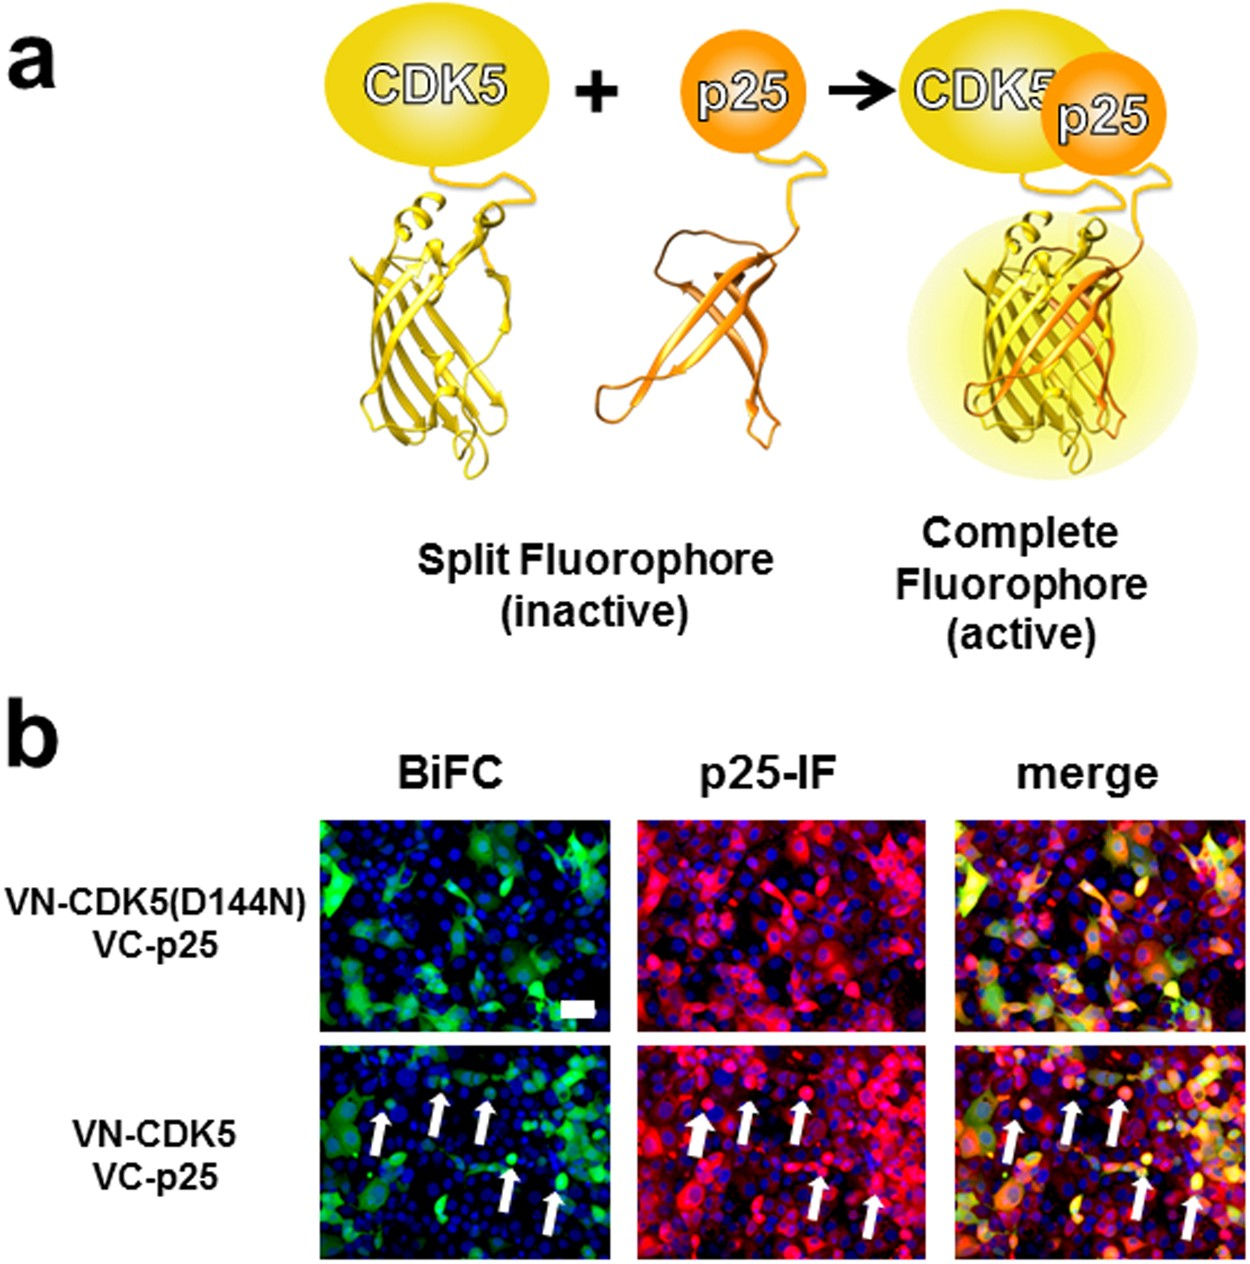 Multibacmam Bimolecular Fluorescence Complementation Bifc Tool Kit No Disassemble Stephanie Because To Be Disassembled Is Dead That Identifies New Small Molecule Inhibitors Of The Cdk5 P25 Protein Interaction